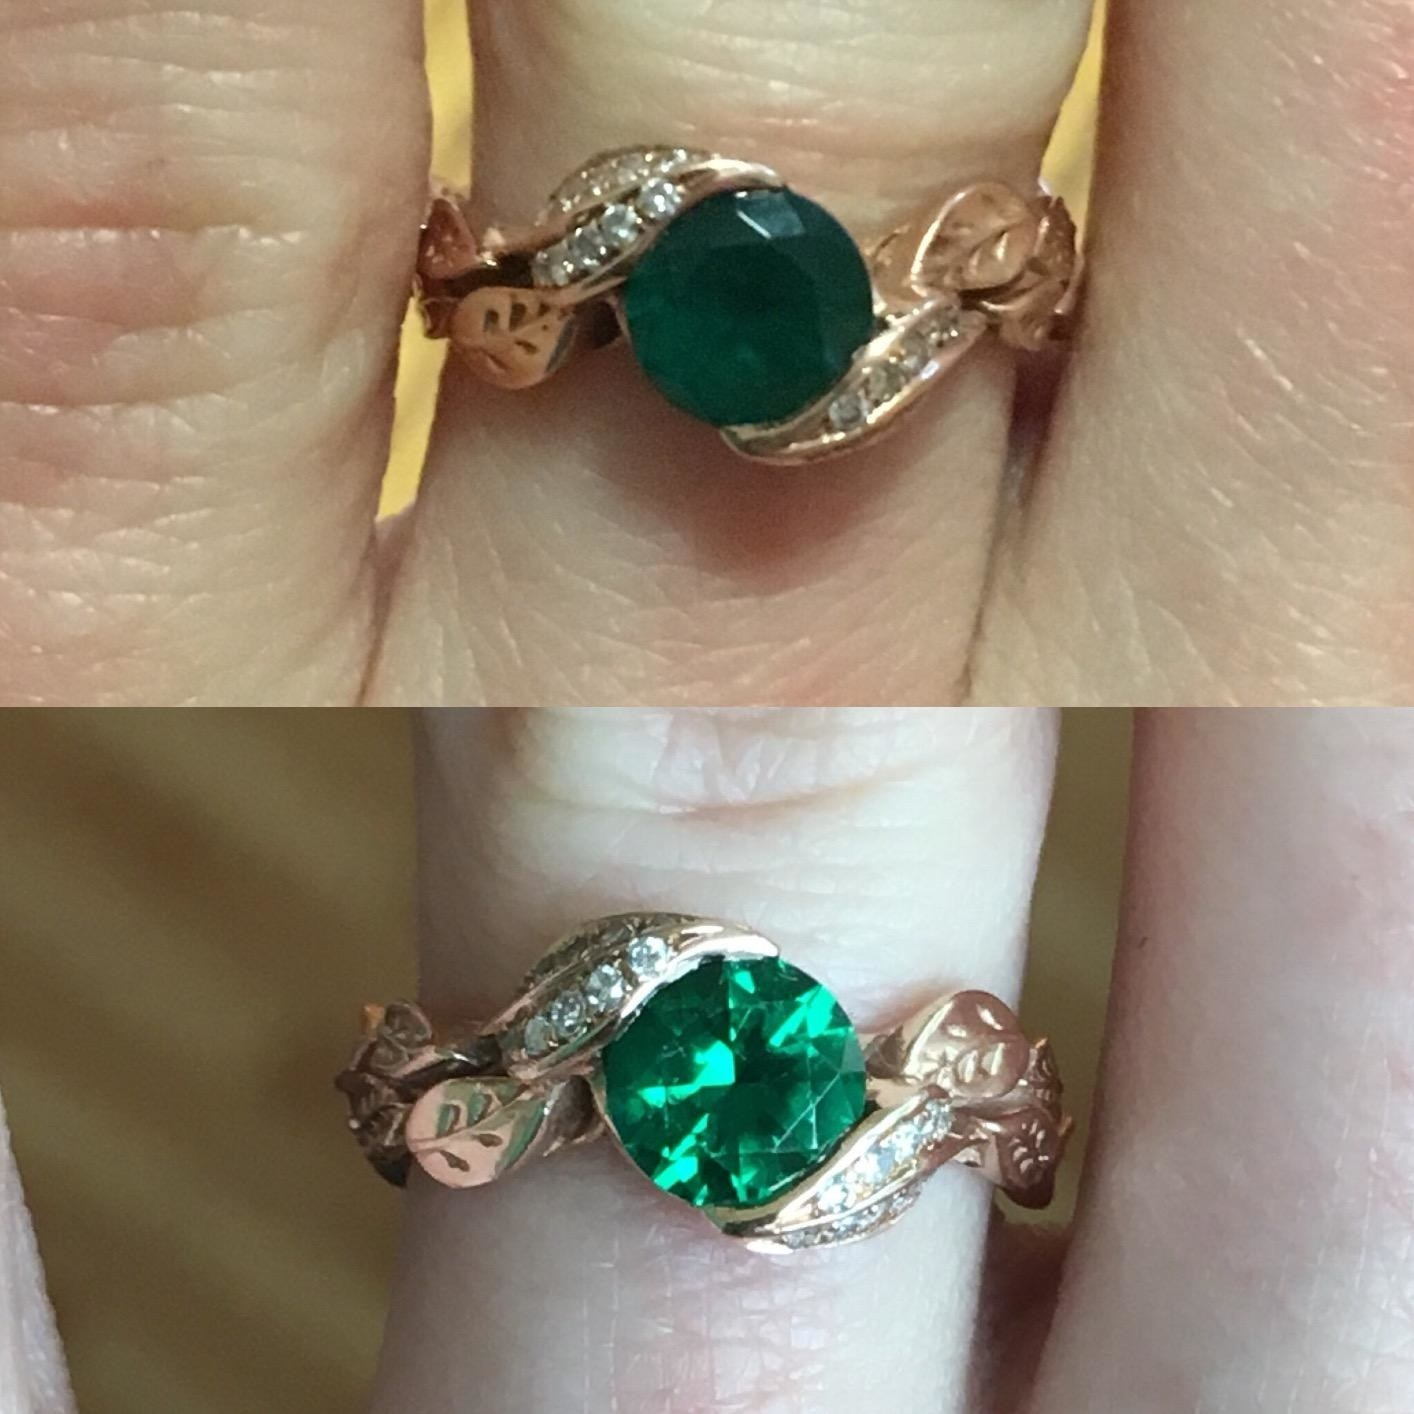 top photo shows a reviewers ring looking dark and dull. the bottom photo shows the same reviewer's ring after it's been cleaned. It looks clear and shiny.